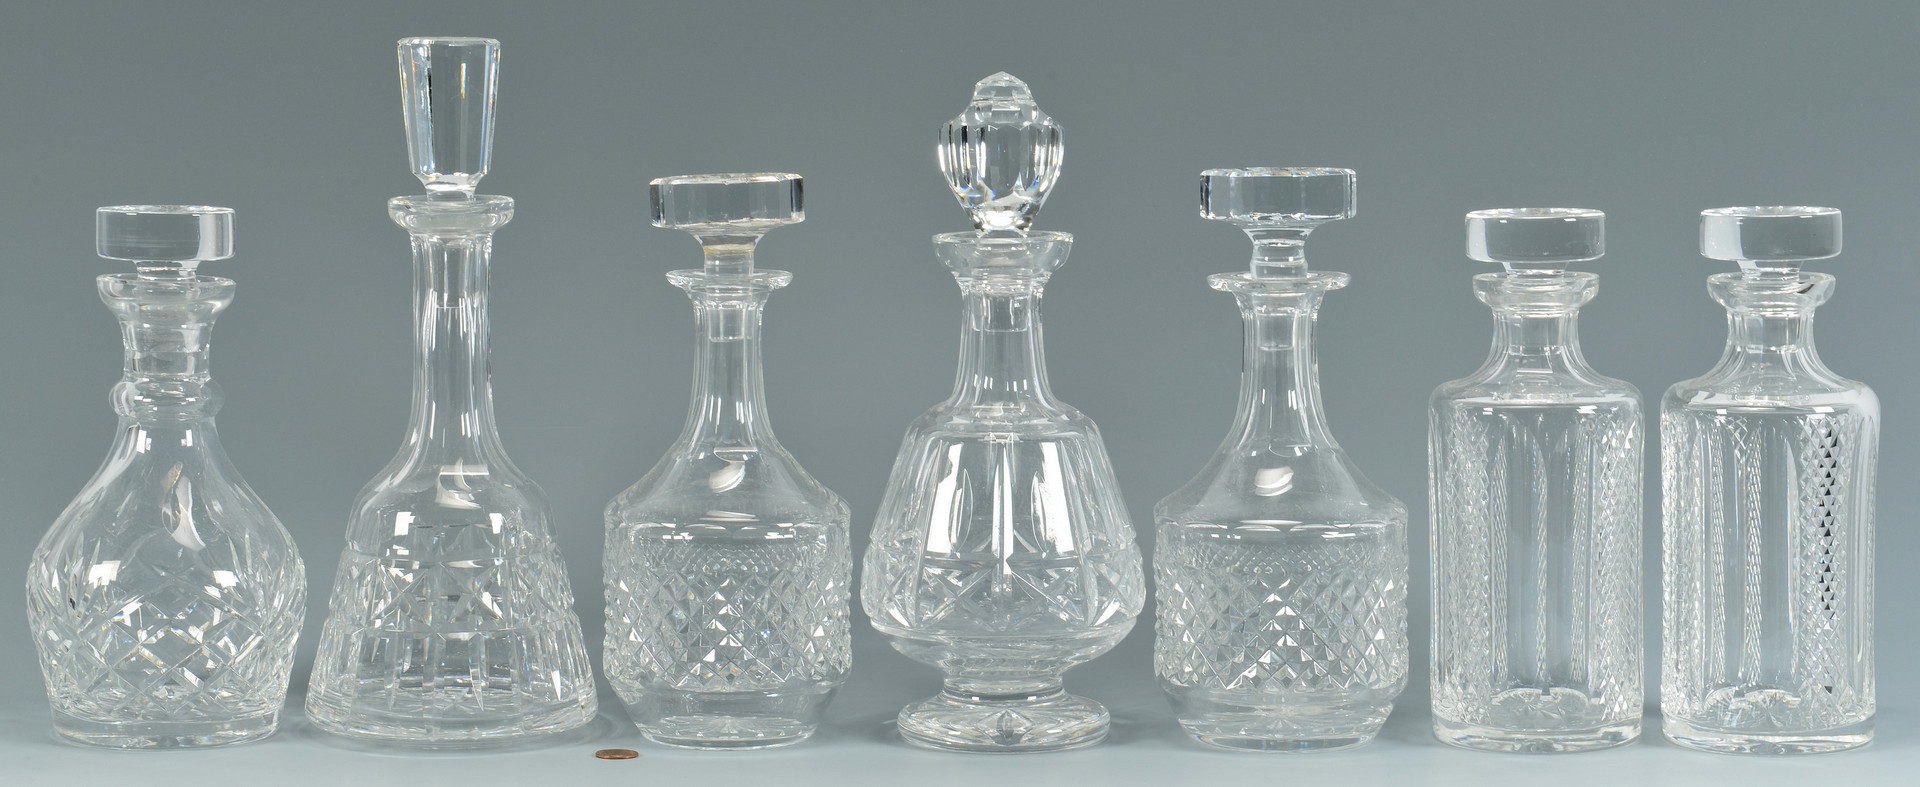 Lot 880 7 Cut Crystal Decanters Waterford Amp Galway